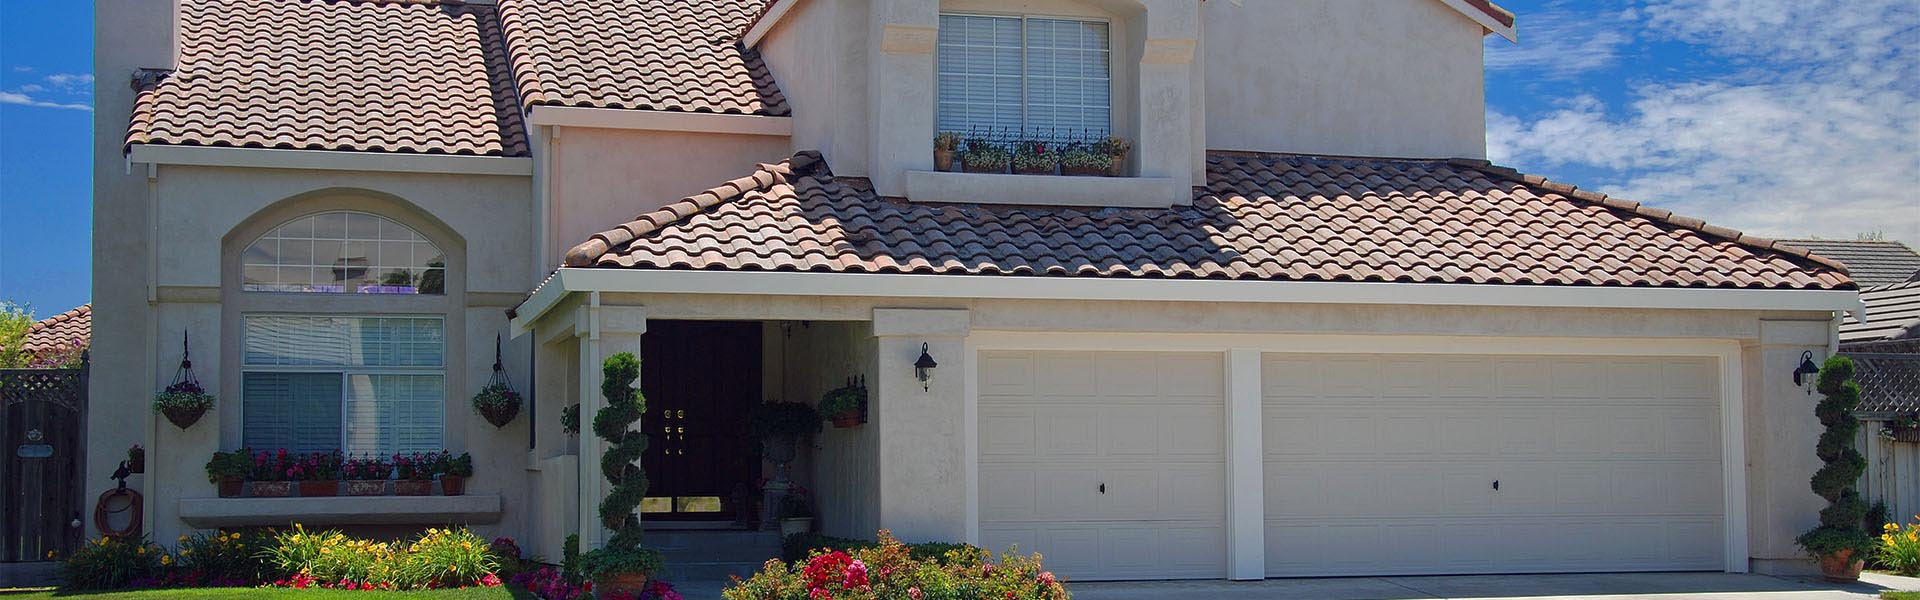 roseville california home with spanish tile roof